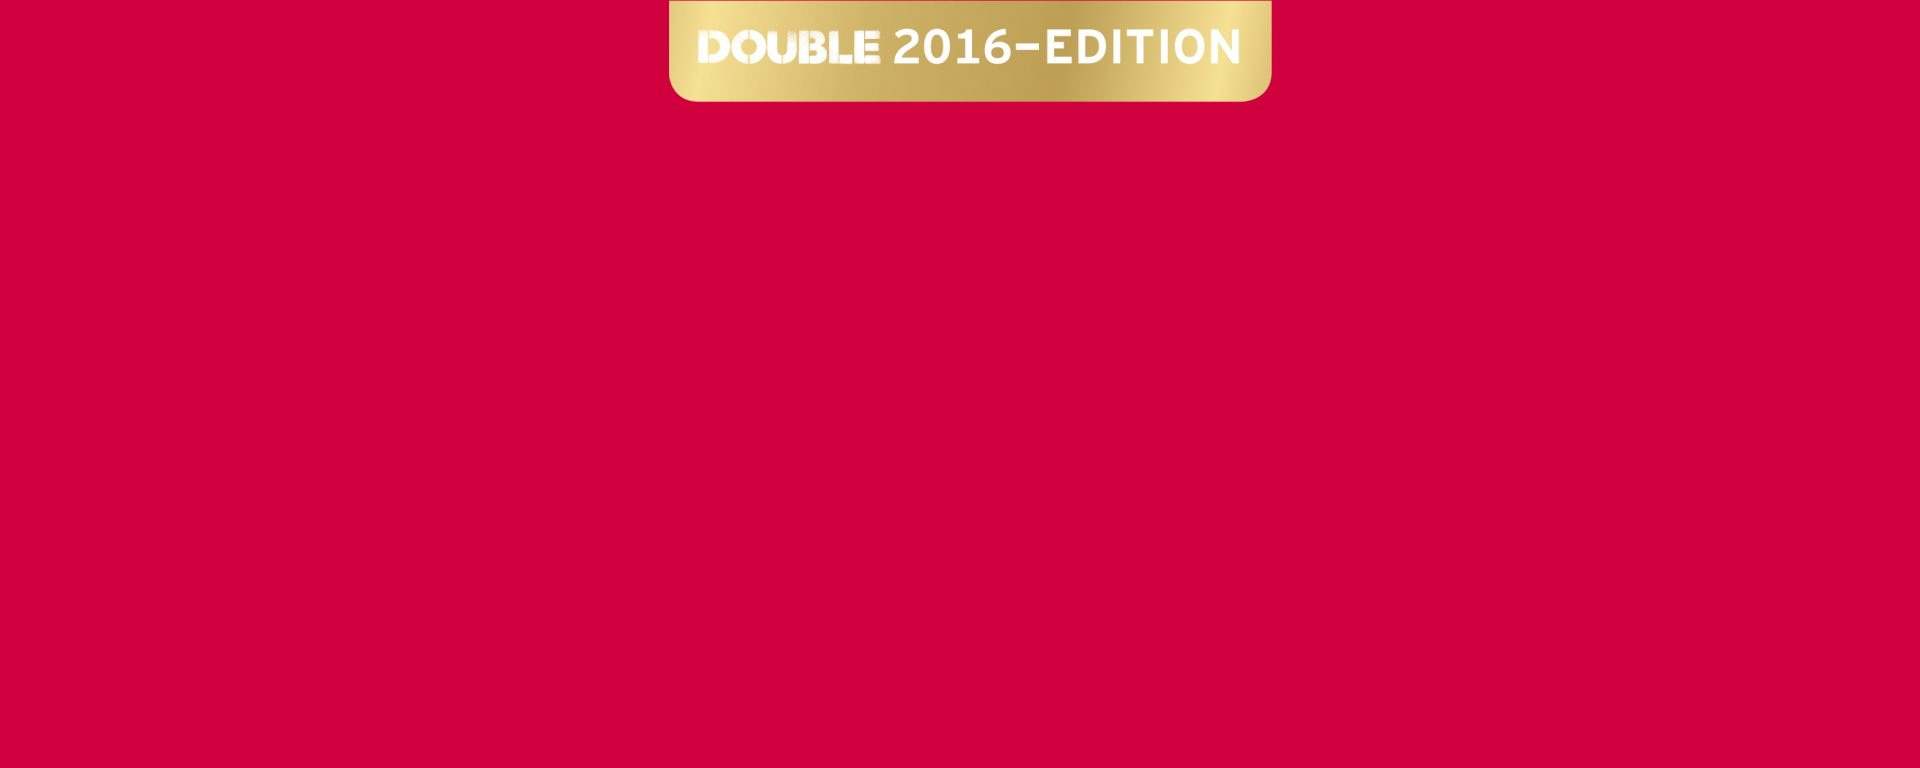 Best of FC Bayern München – Double 2016 Edition